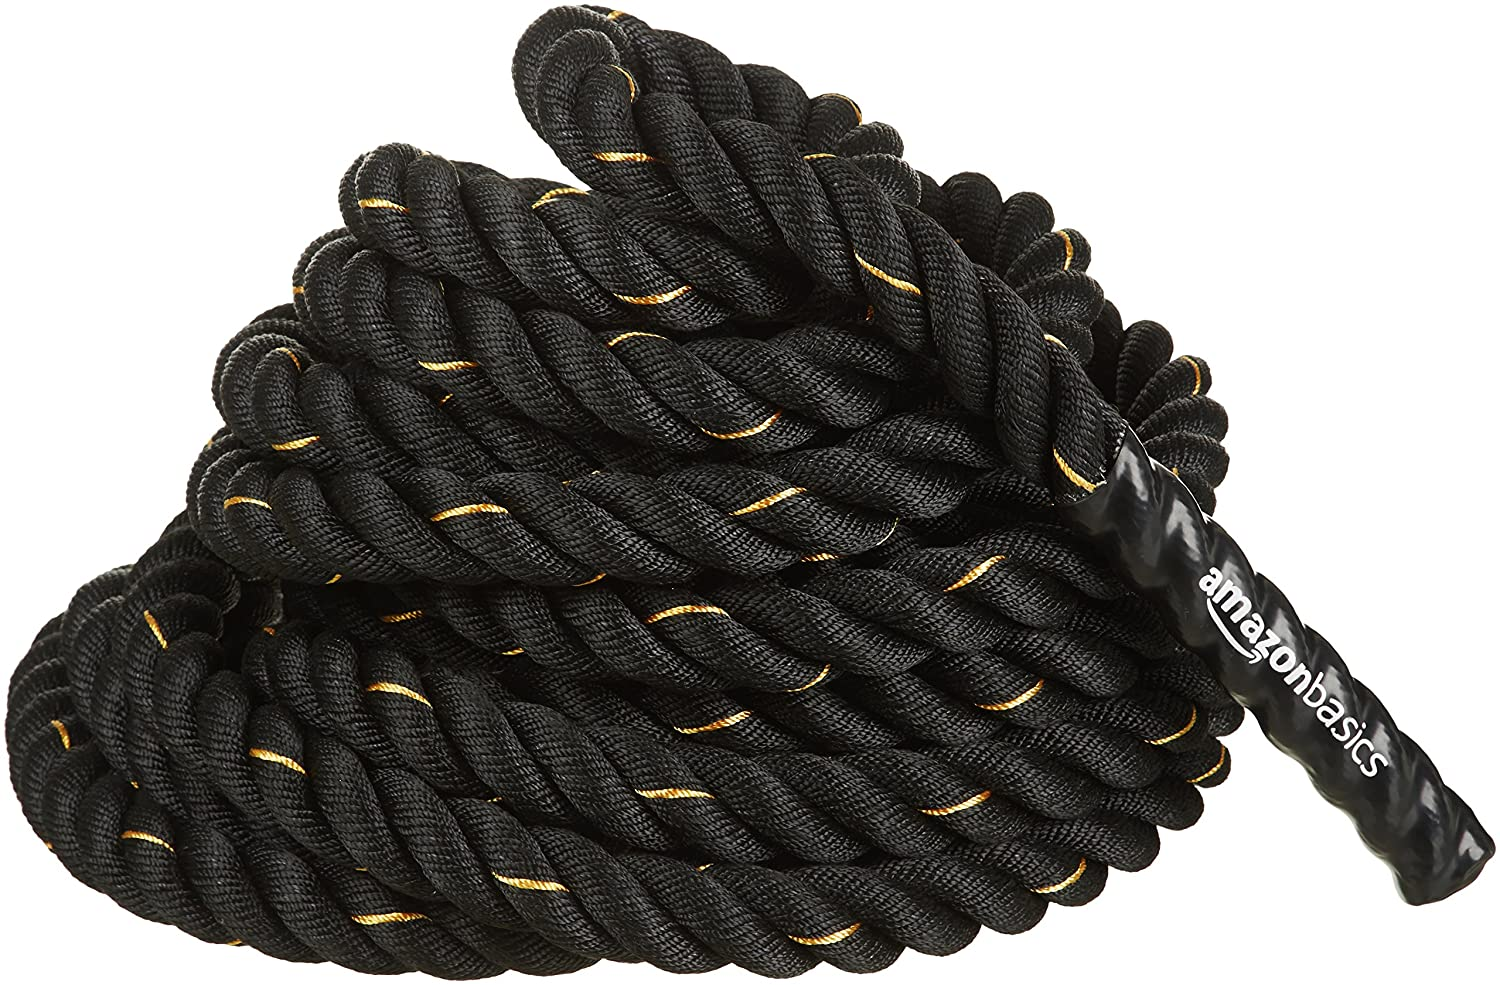 Amazon Basics Fitness Battle Rope